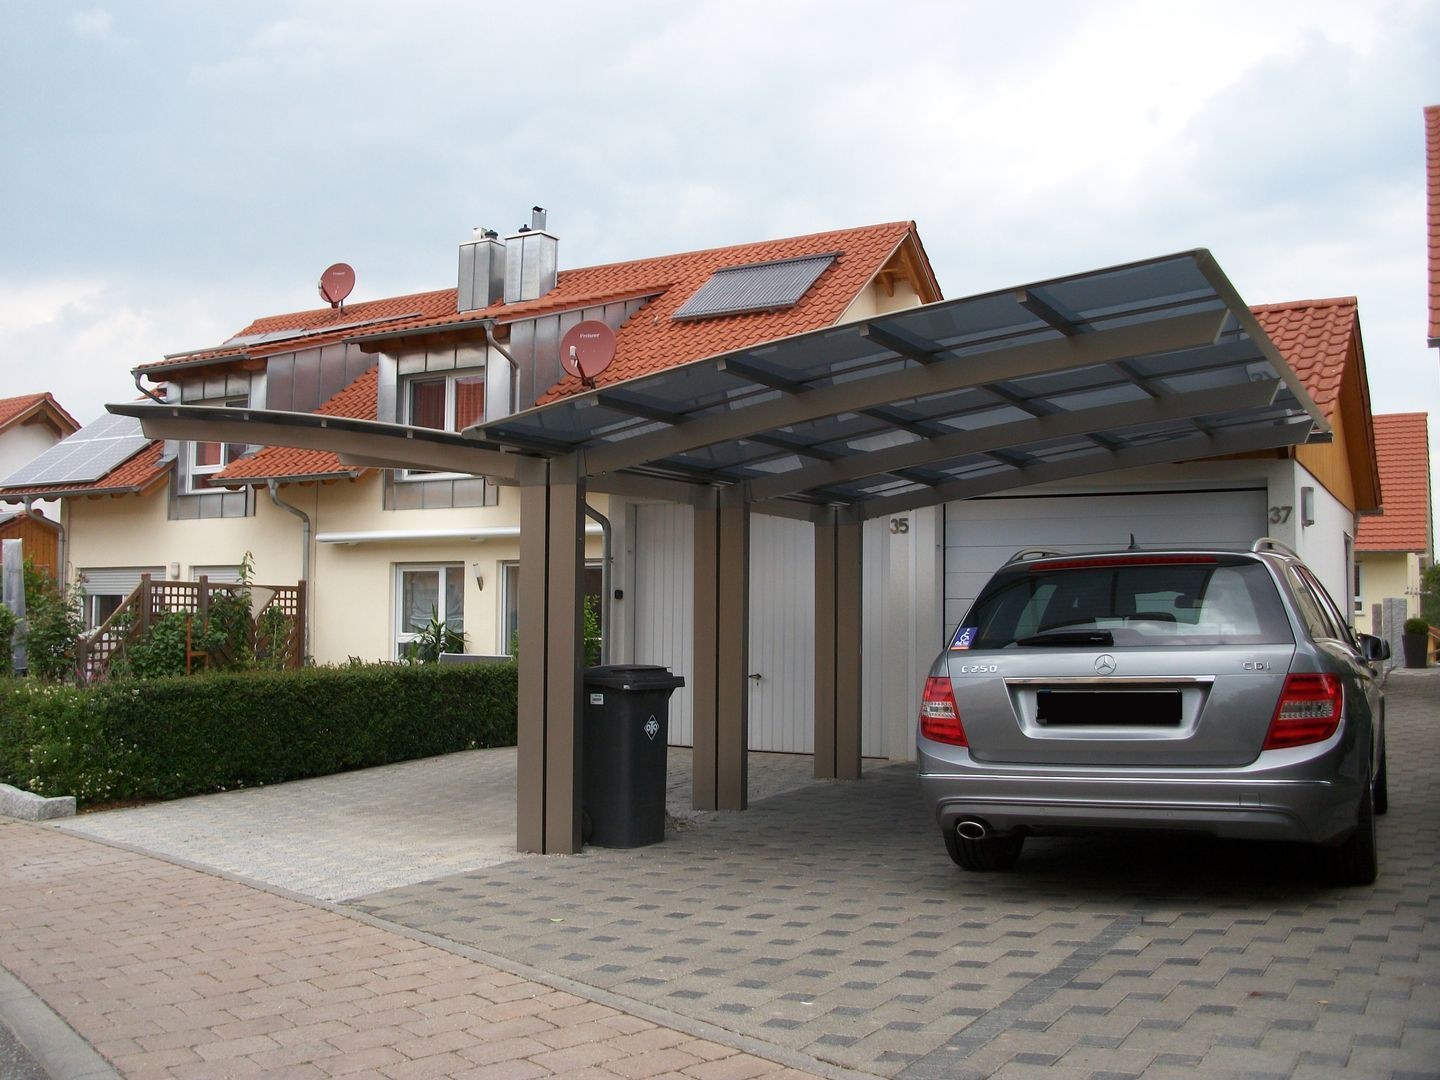 Premium Quality Modern Carports Awnings For Residential Commercial Applications Our Innovative Products Ar Modern Carport Carport Designs Cantilever Carport